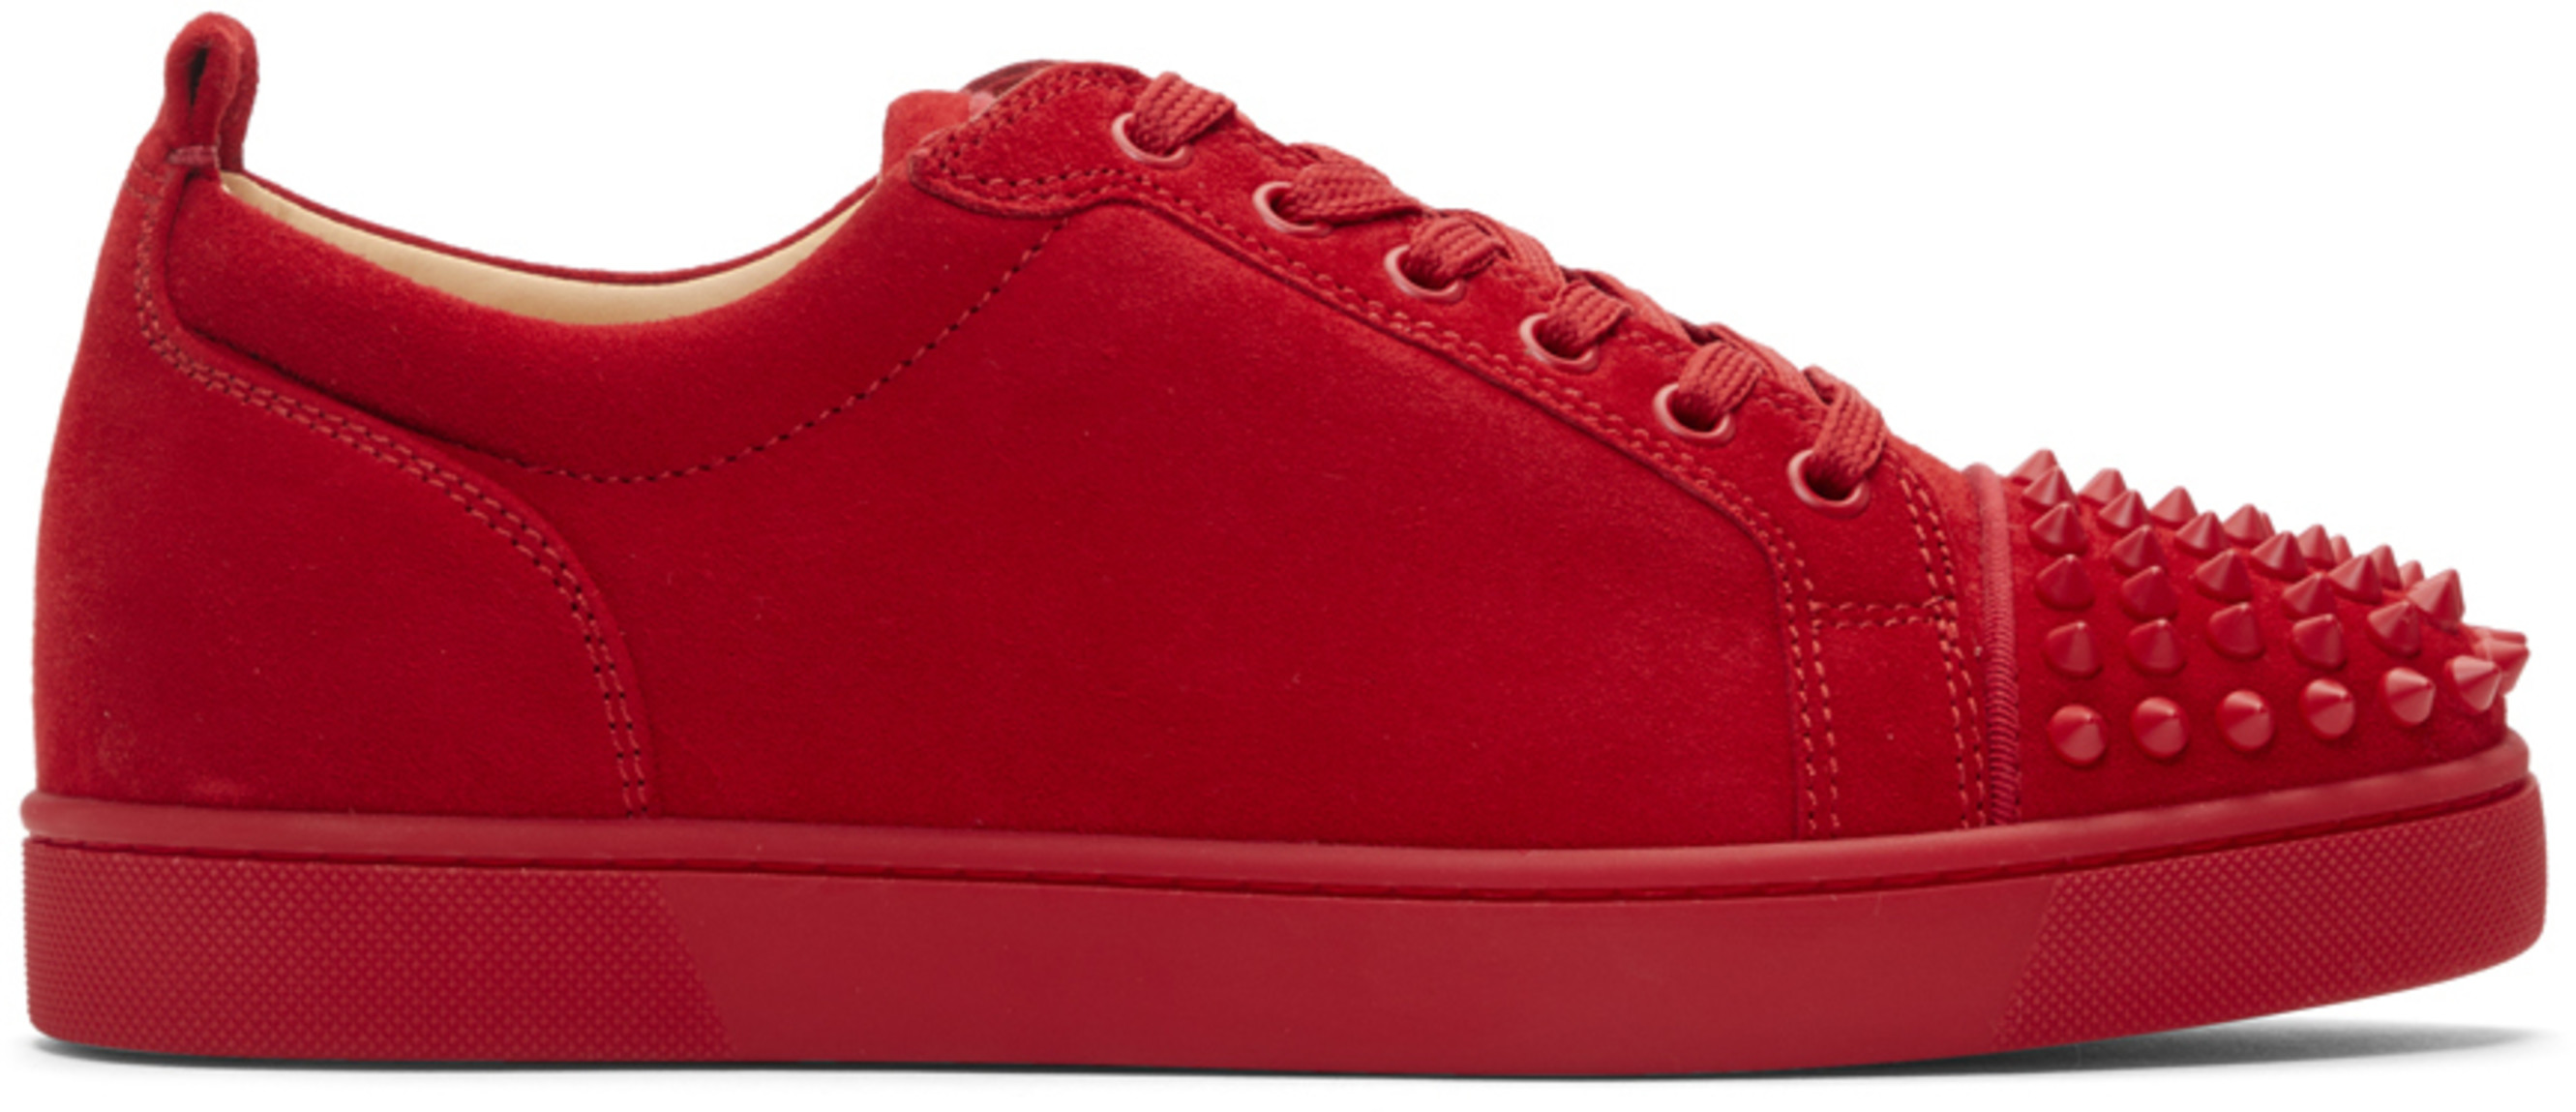 promo code bb3b6 aecd2 Red Suede Louis Junior Spikes Sneakers